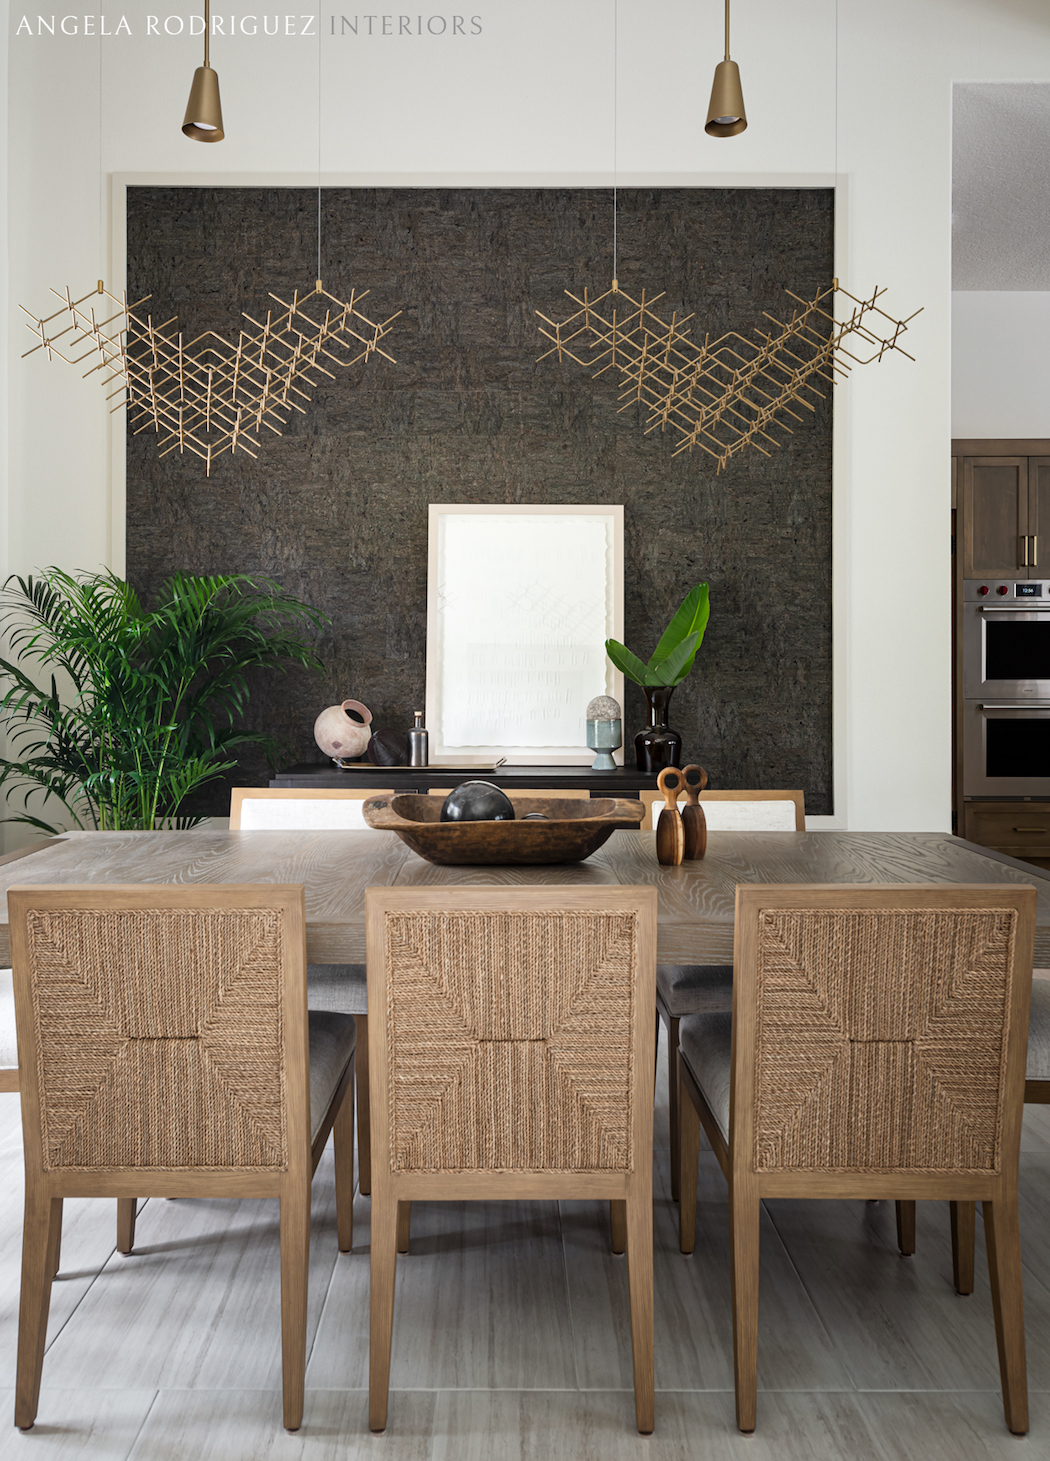 Transitional style dining room interior design by Angela Rodriguez Interiors in Sarasota Florida